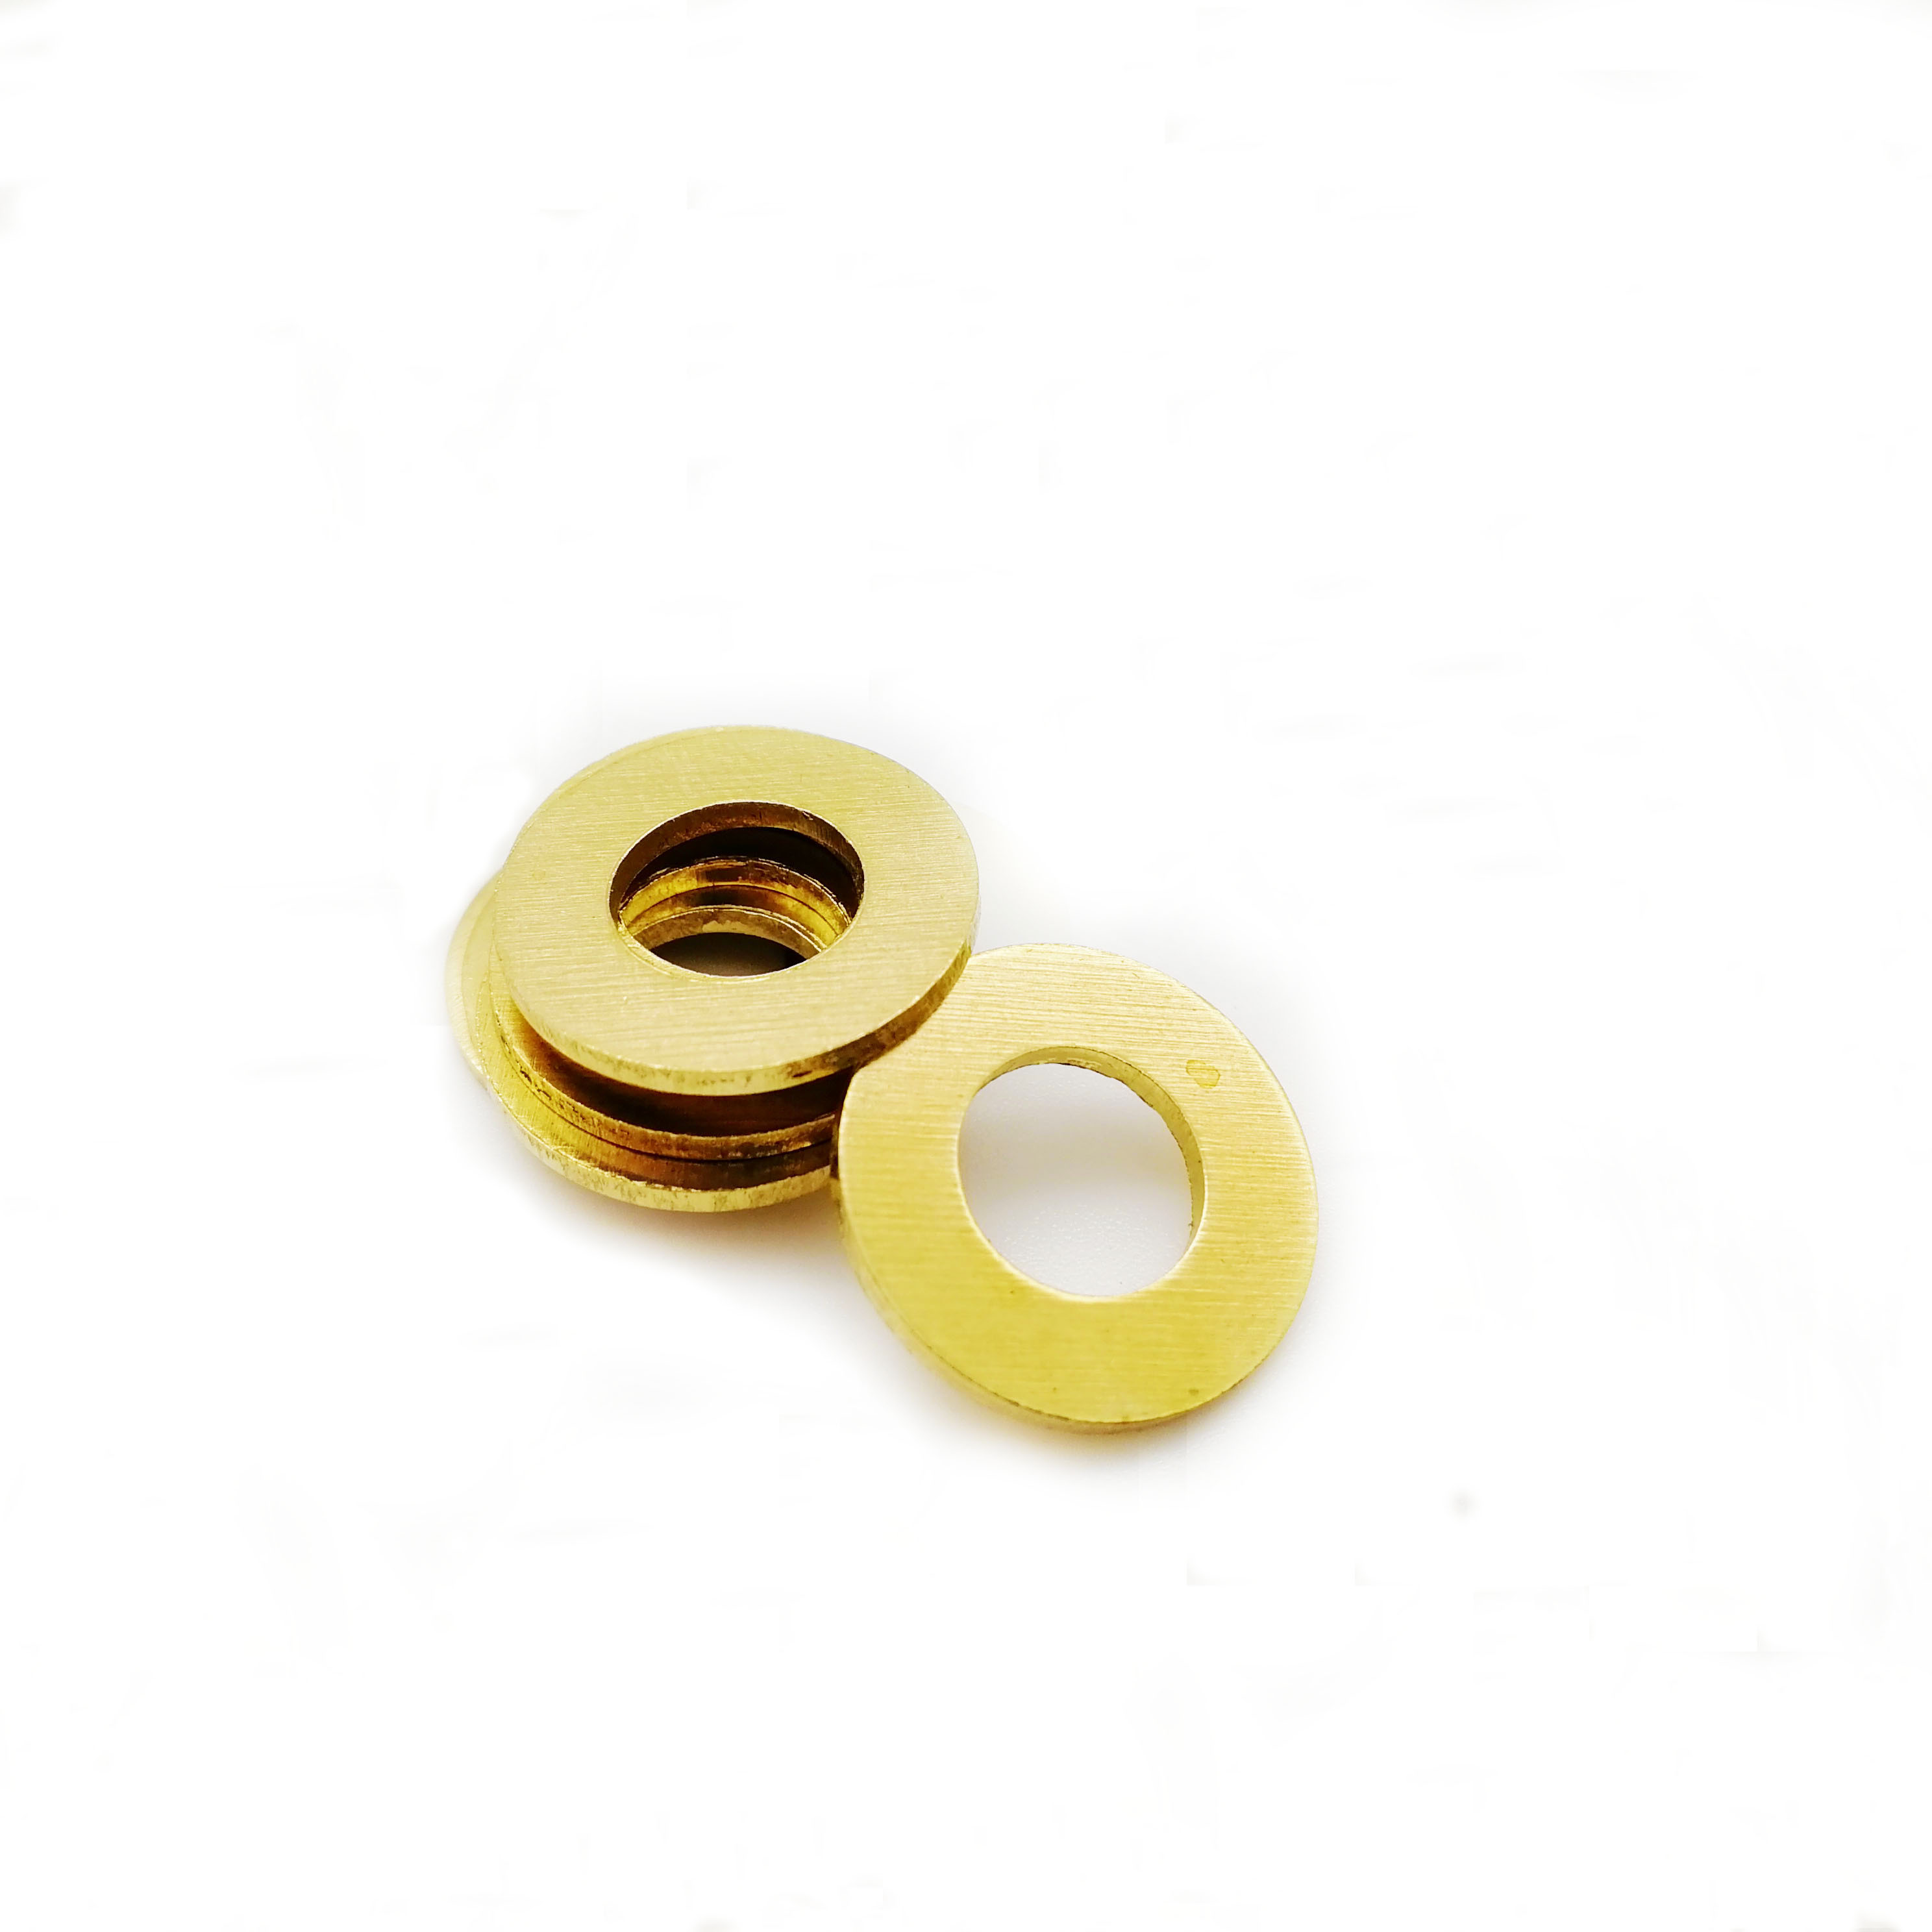 M2 M2.5 M3 M4 M5 M6 <font><b>M8</b></font> M10 Brass flat <font><b>washer</b></font> shim Copper gasket Flat <font><b>Washer</b></font> Thickness 0.4/0.5/0.8/1/1.2mm image